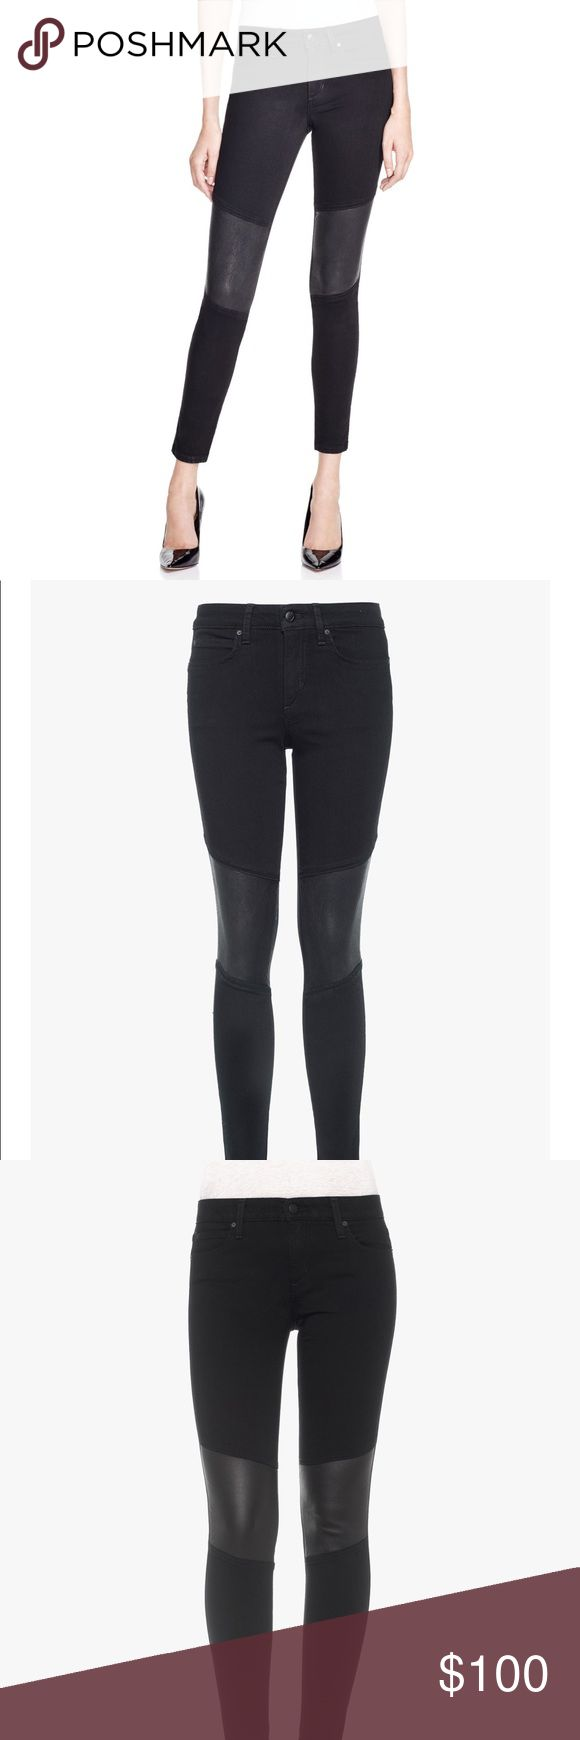 Black leather knee joe's Phoenix skinny ankle jean NEW NEVER WORN, price tag not included but tag in waist is there as shown in picture. The Phoenix Skinny Ankle in Regan is a black on black rinse denim with leather inserts at the knees for a sleek, rocker look. Utilizing our gravity-defying Flawless fabric technology, this mid rise skinny ankle is as flattering as it is glamorous. Women's Jeans  56% RAYON, 25% COTTON, 18% POLY Joe's Jeans Jeans Skinny